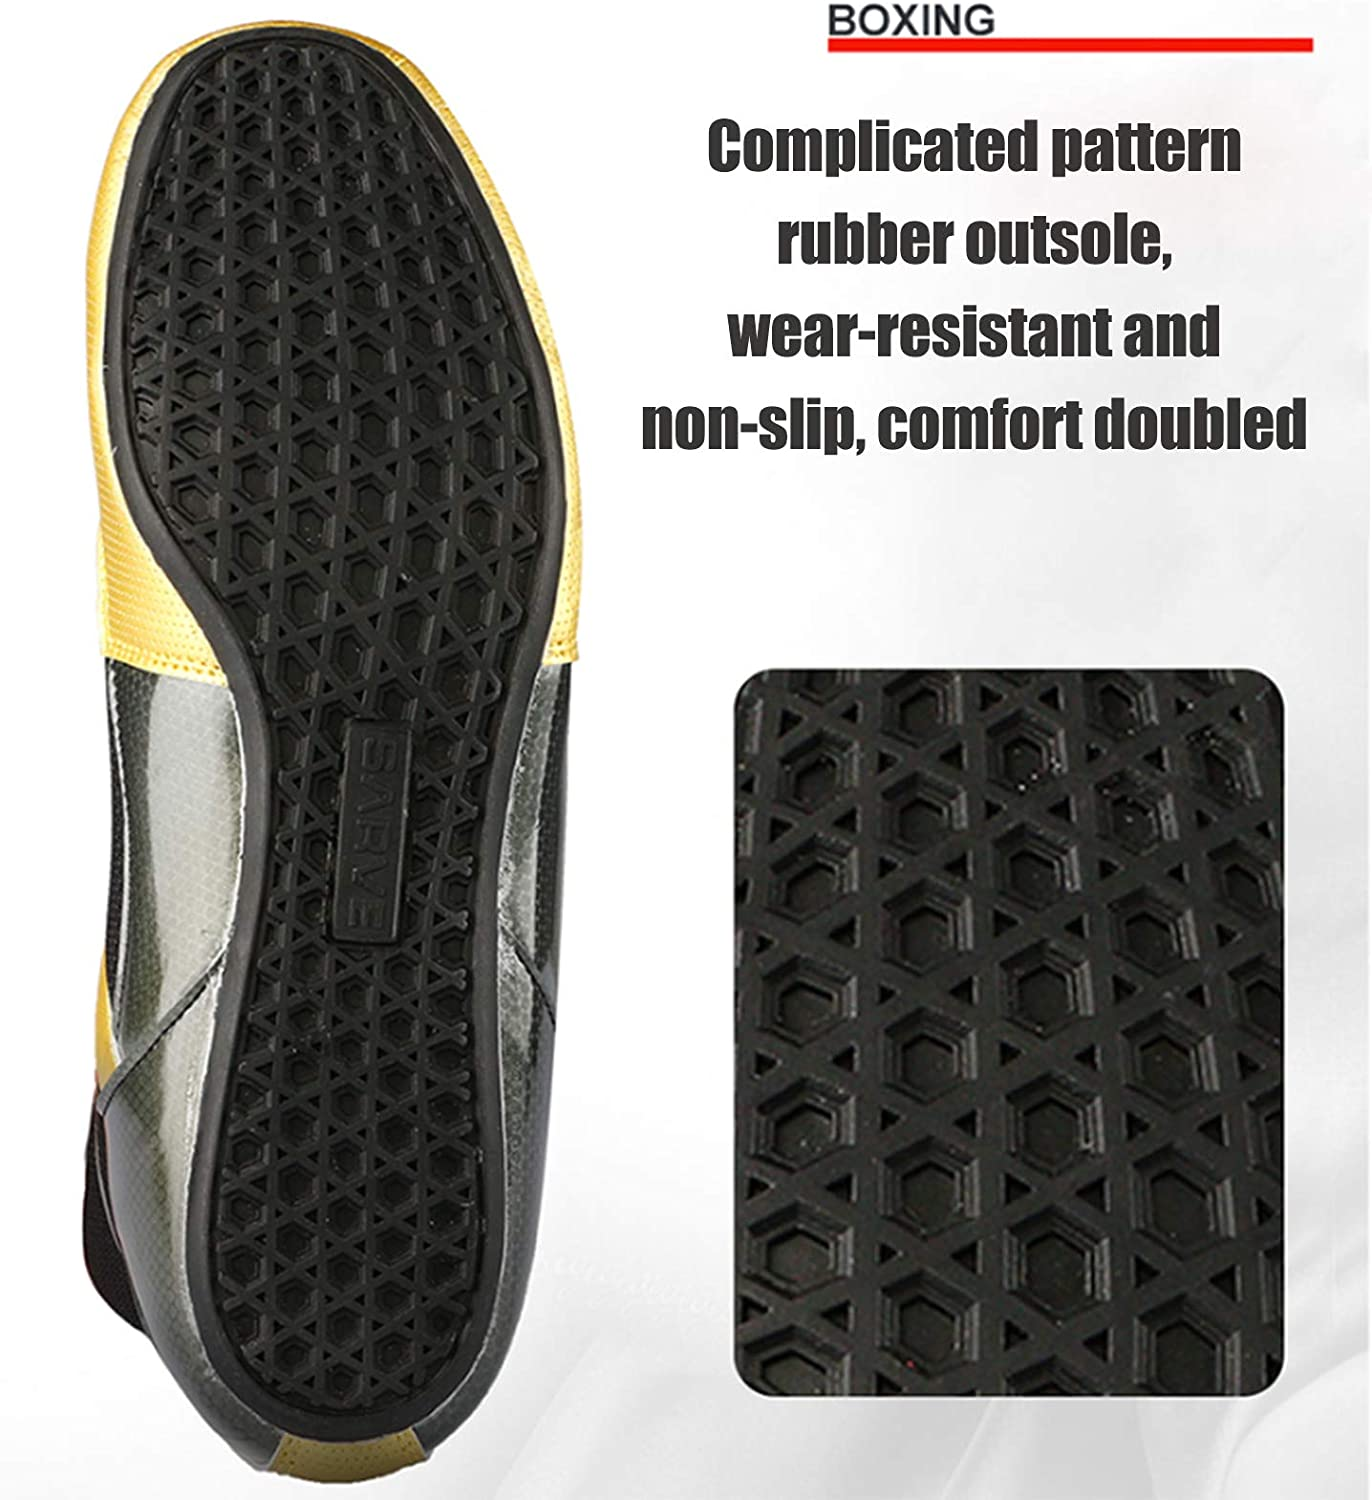 QIAO High Top Mens Wrestling Boxing Shoes Non-Slip Breathable Boxing Wrestling Training Shoes for Men Women Sport Athletic Casual Shoes